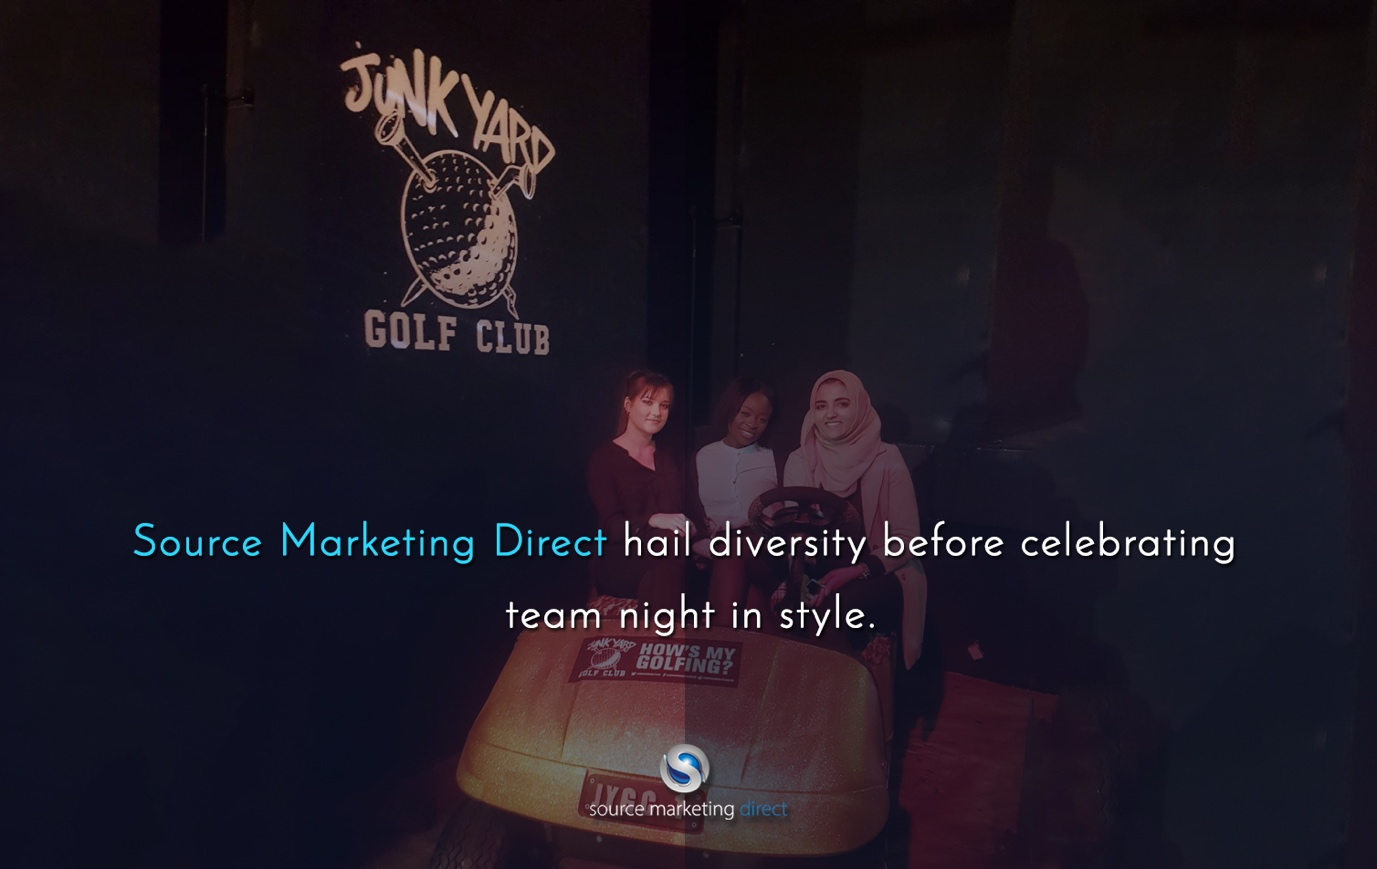 Source Marketing Direct hail diversity before celebrating team night in style